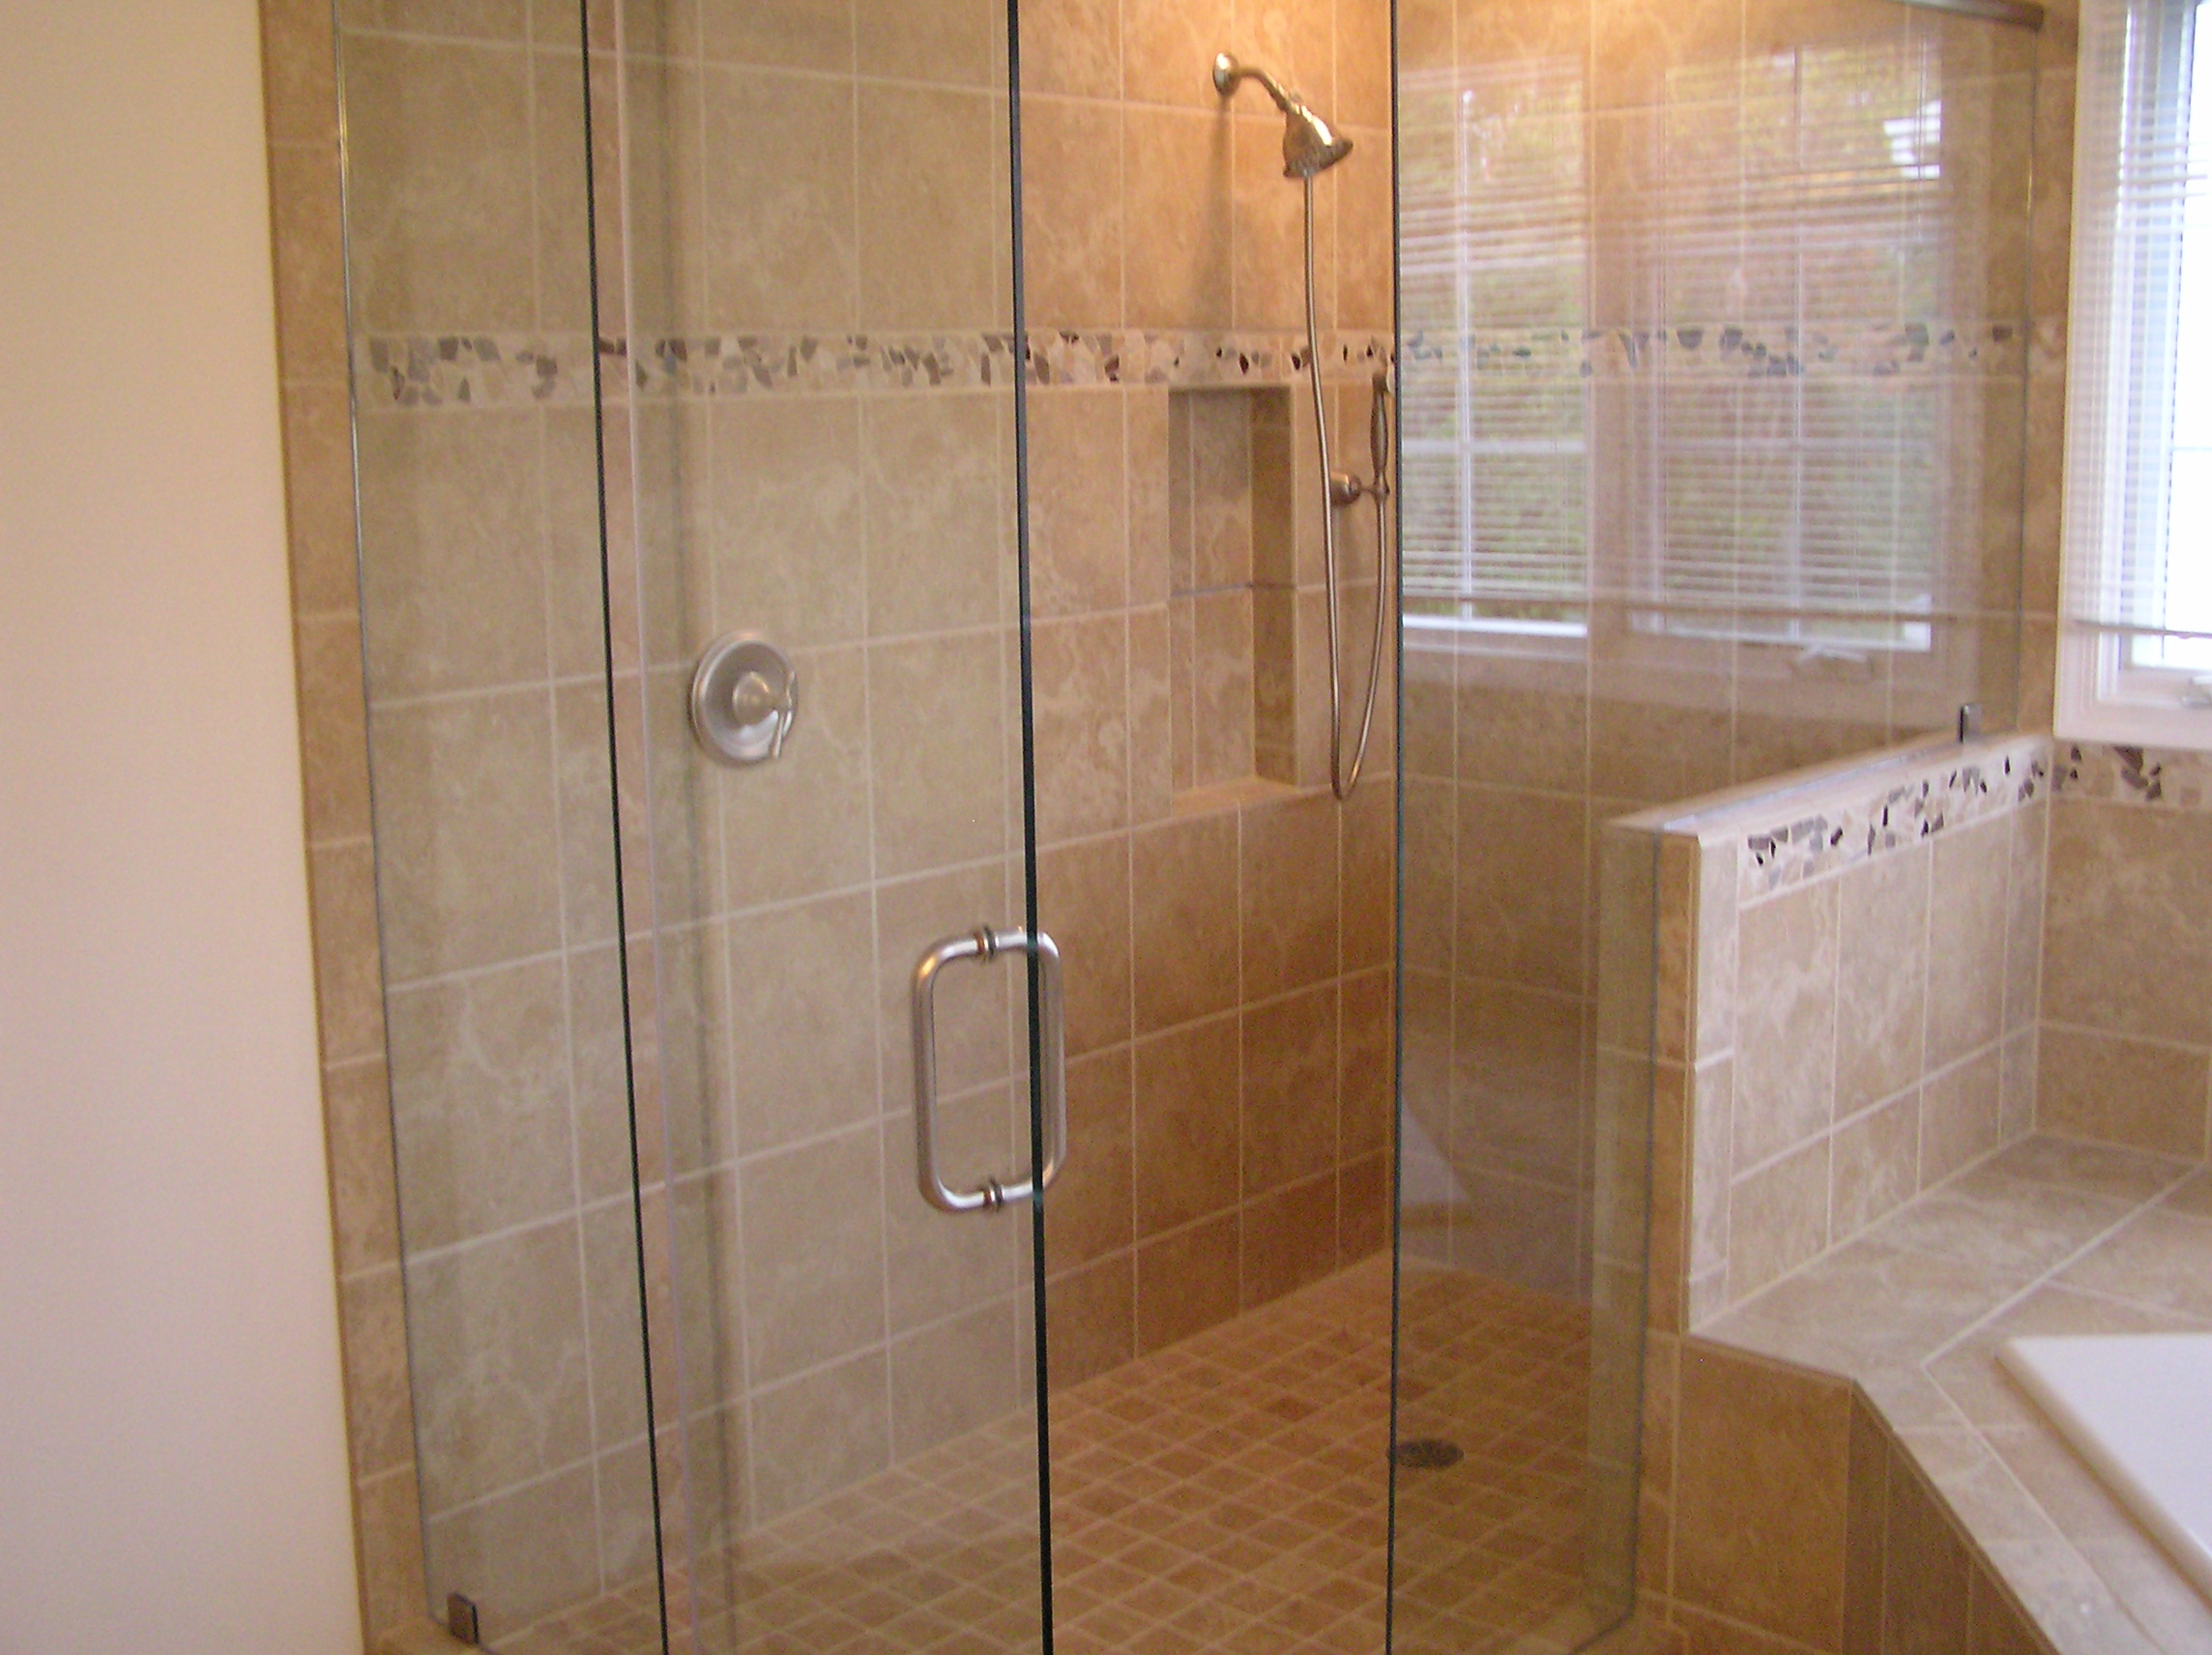 small bathroom remodel ideas pictures - large and beautiful photos